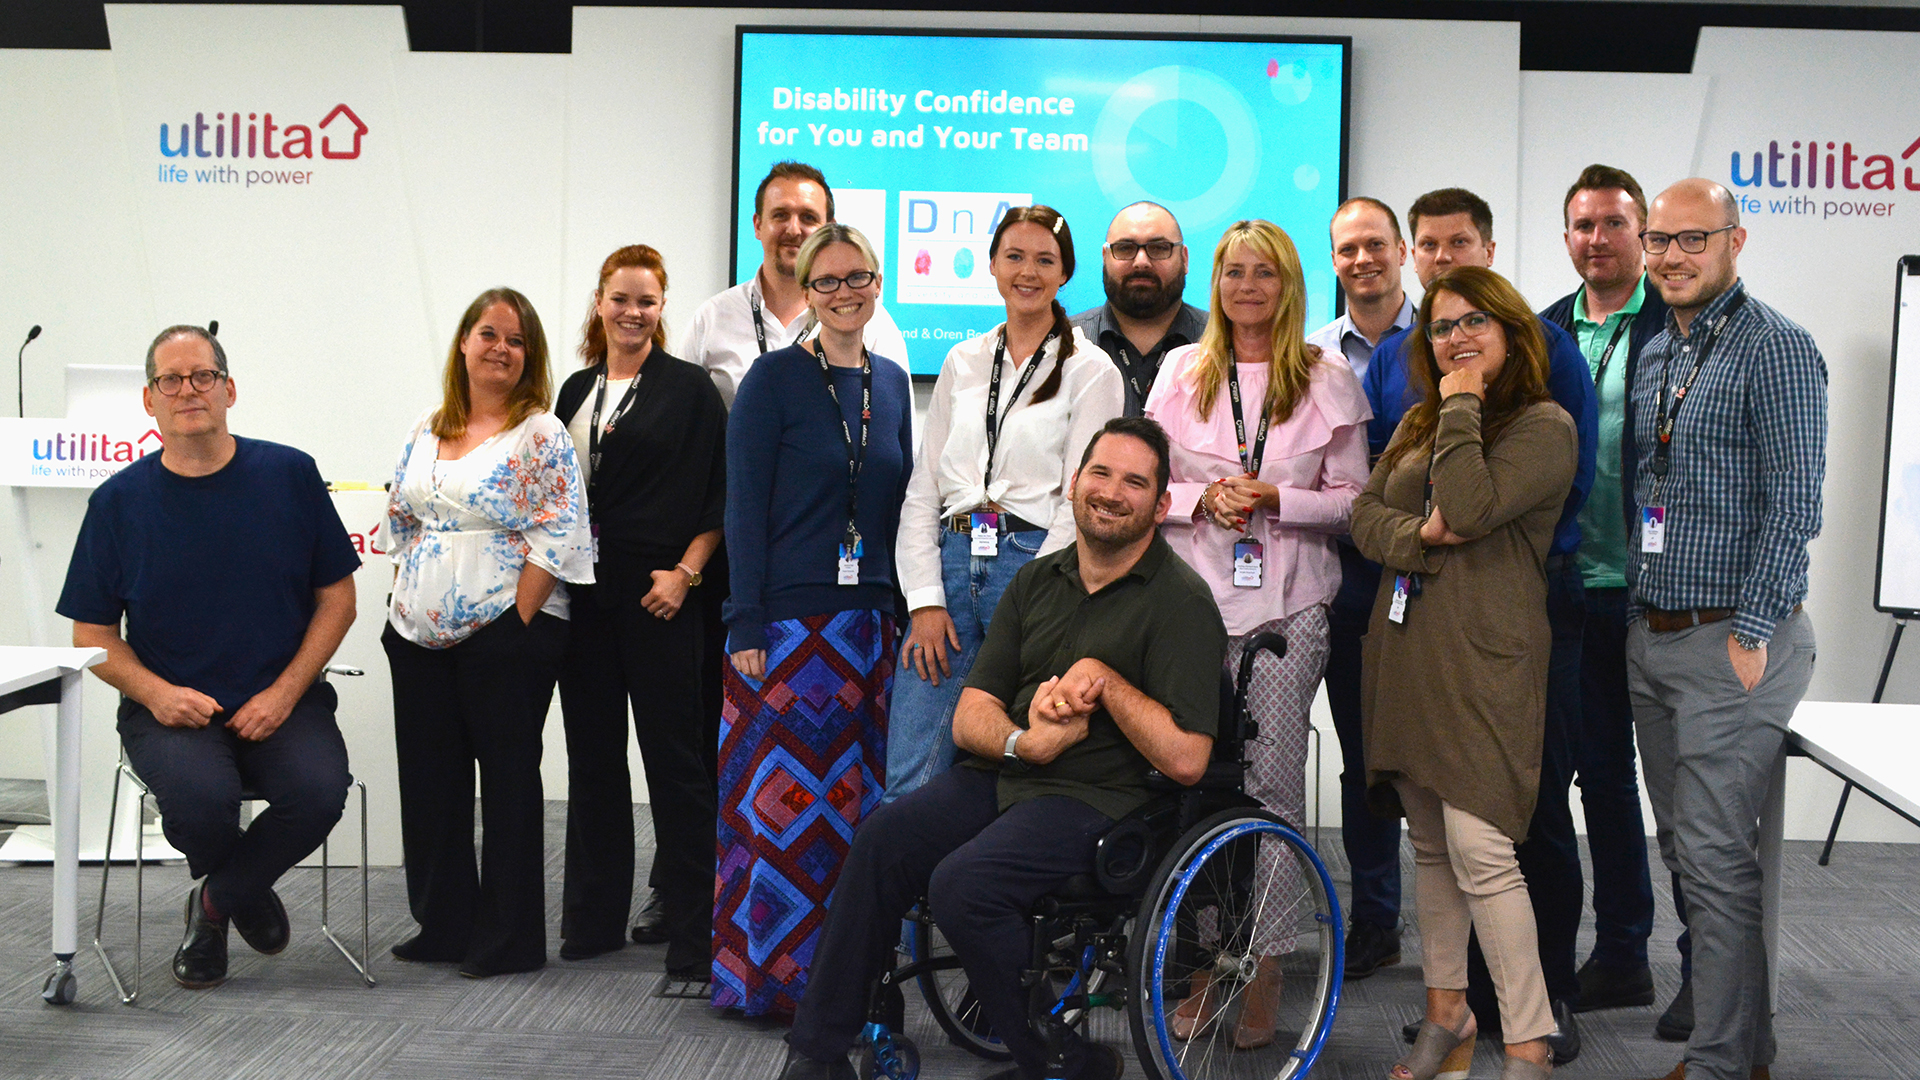 A photo of the Utilita team with D&A's Adam Hyland (Director of Accessibility and Inclusion) and Oren Ben-Dor (Assistive Technology Trainer). All are smiling. In the background is the powerpoint which displays the title of the workshop the team is about deliver: Disability Confidence for You and Your Team